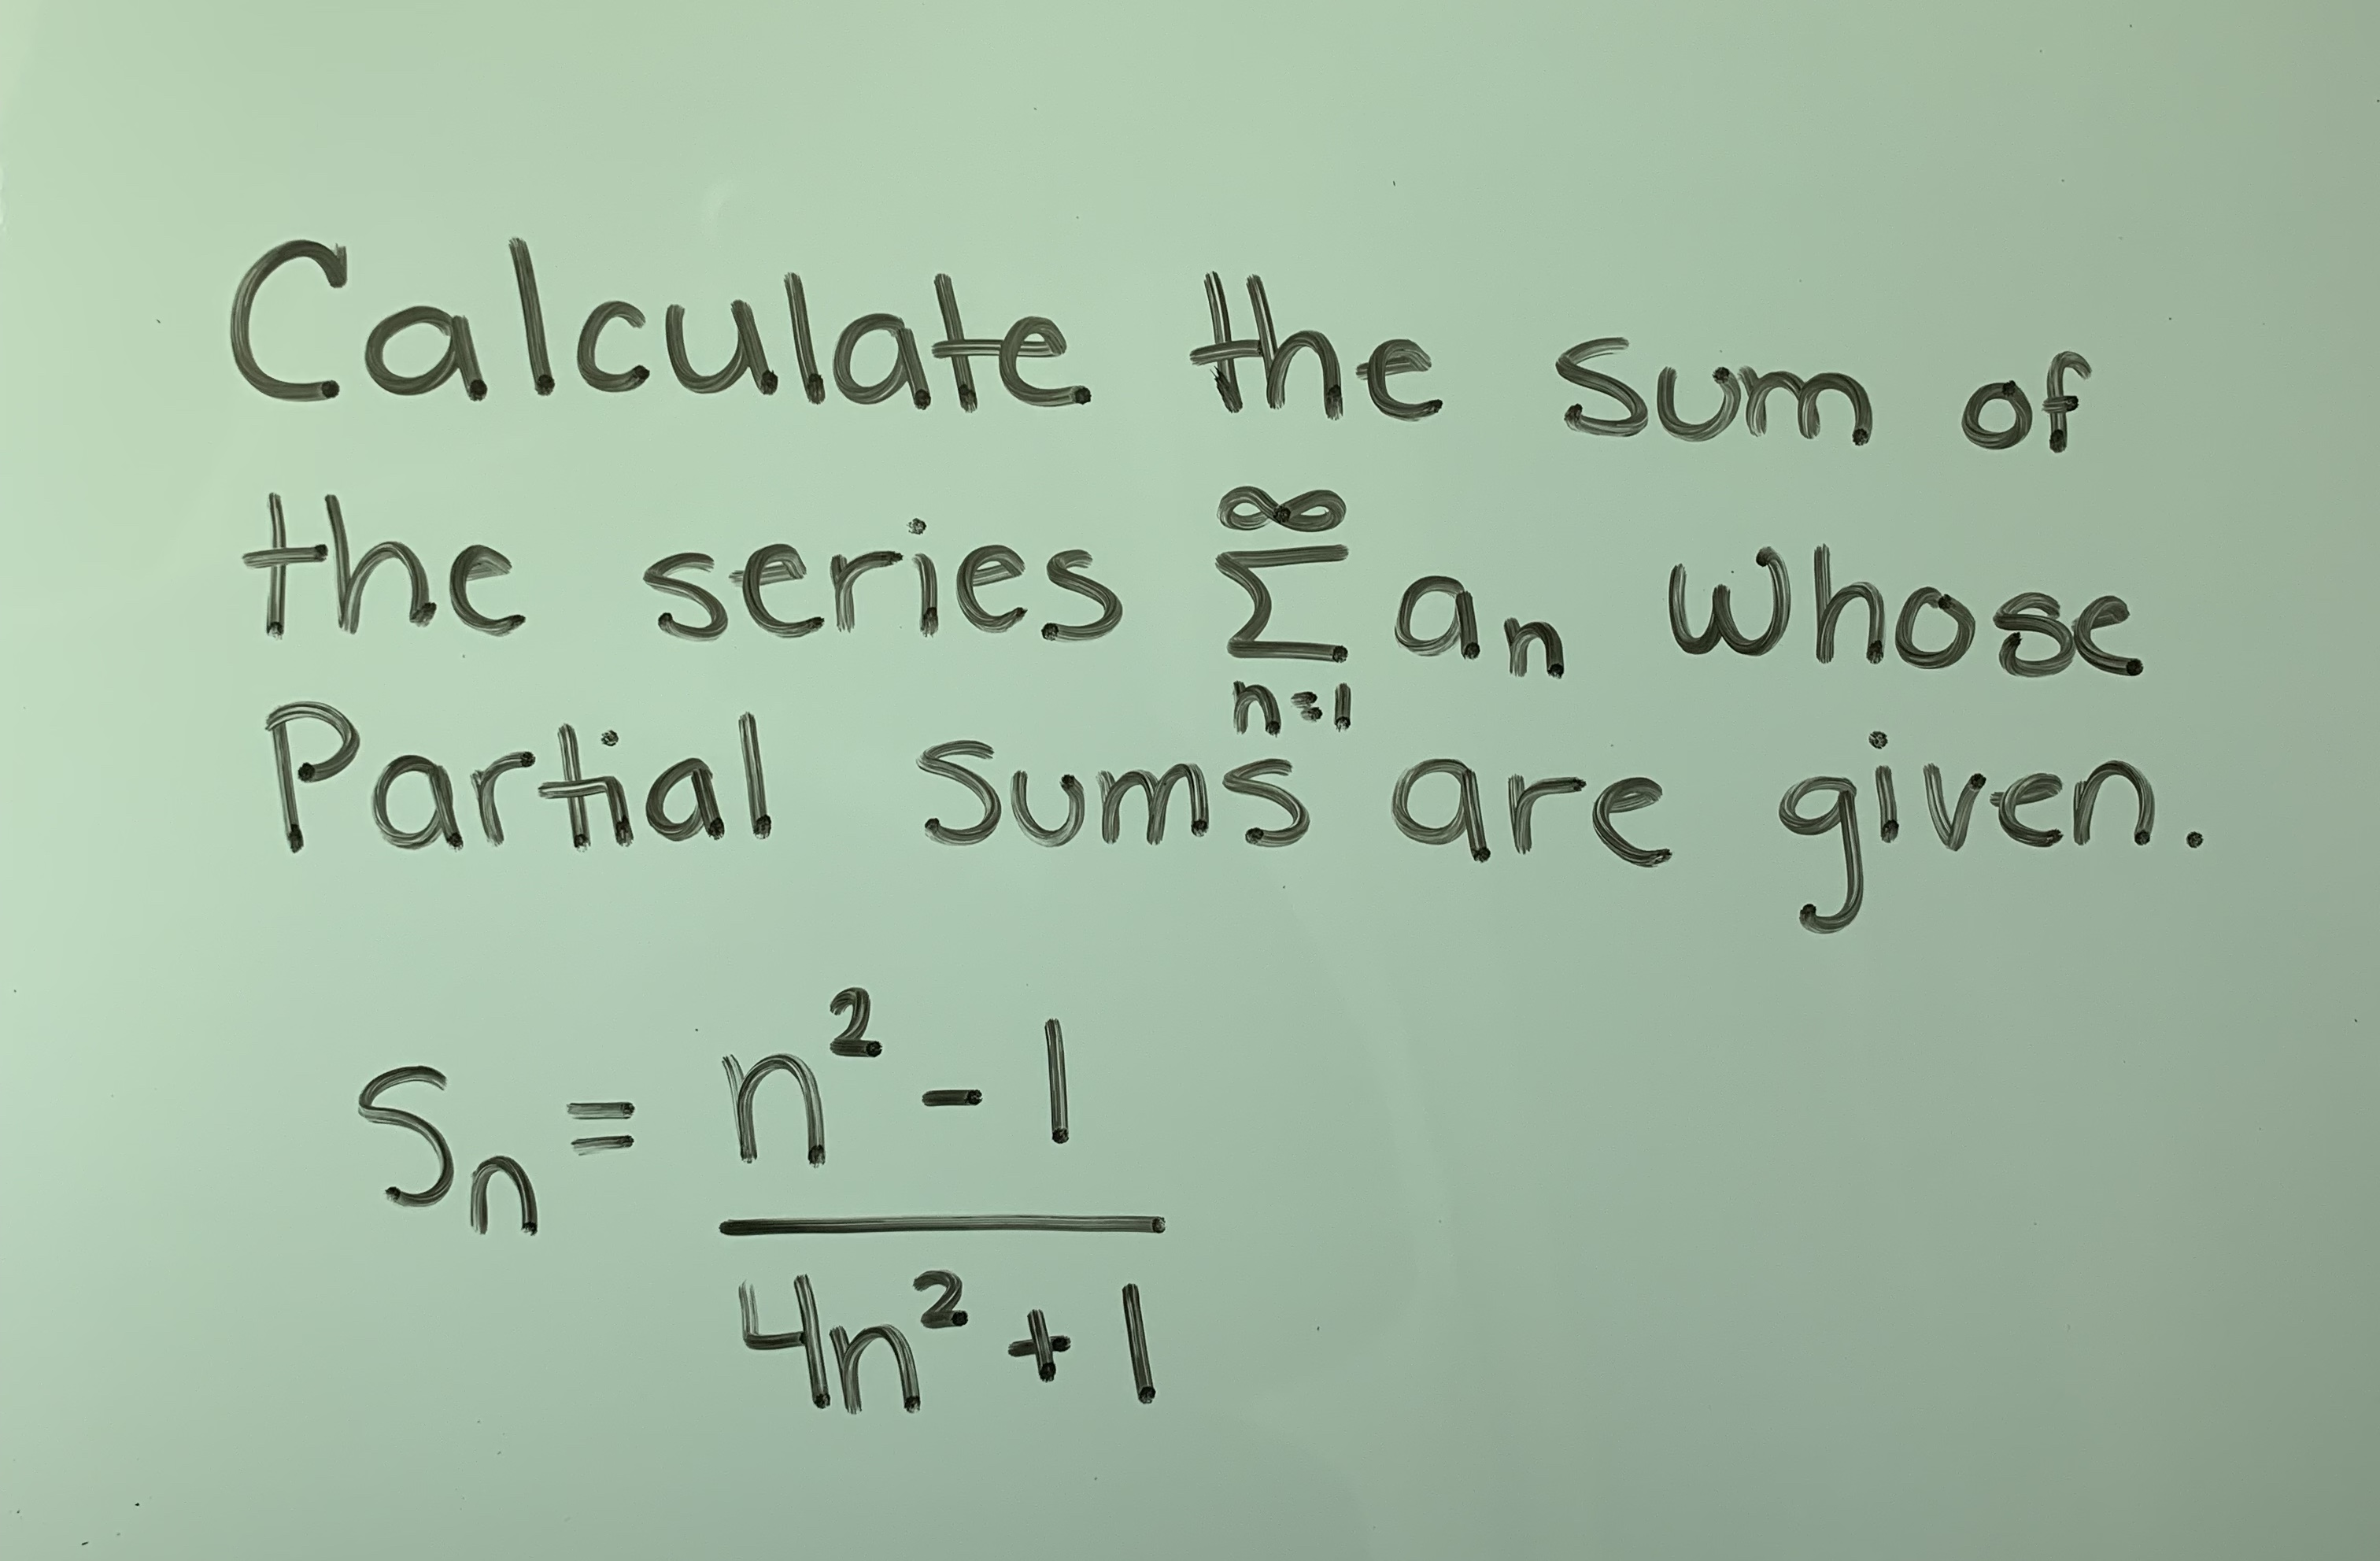 Calculate the sum of the series Σ an whose arhal Sums are given 2 Sn